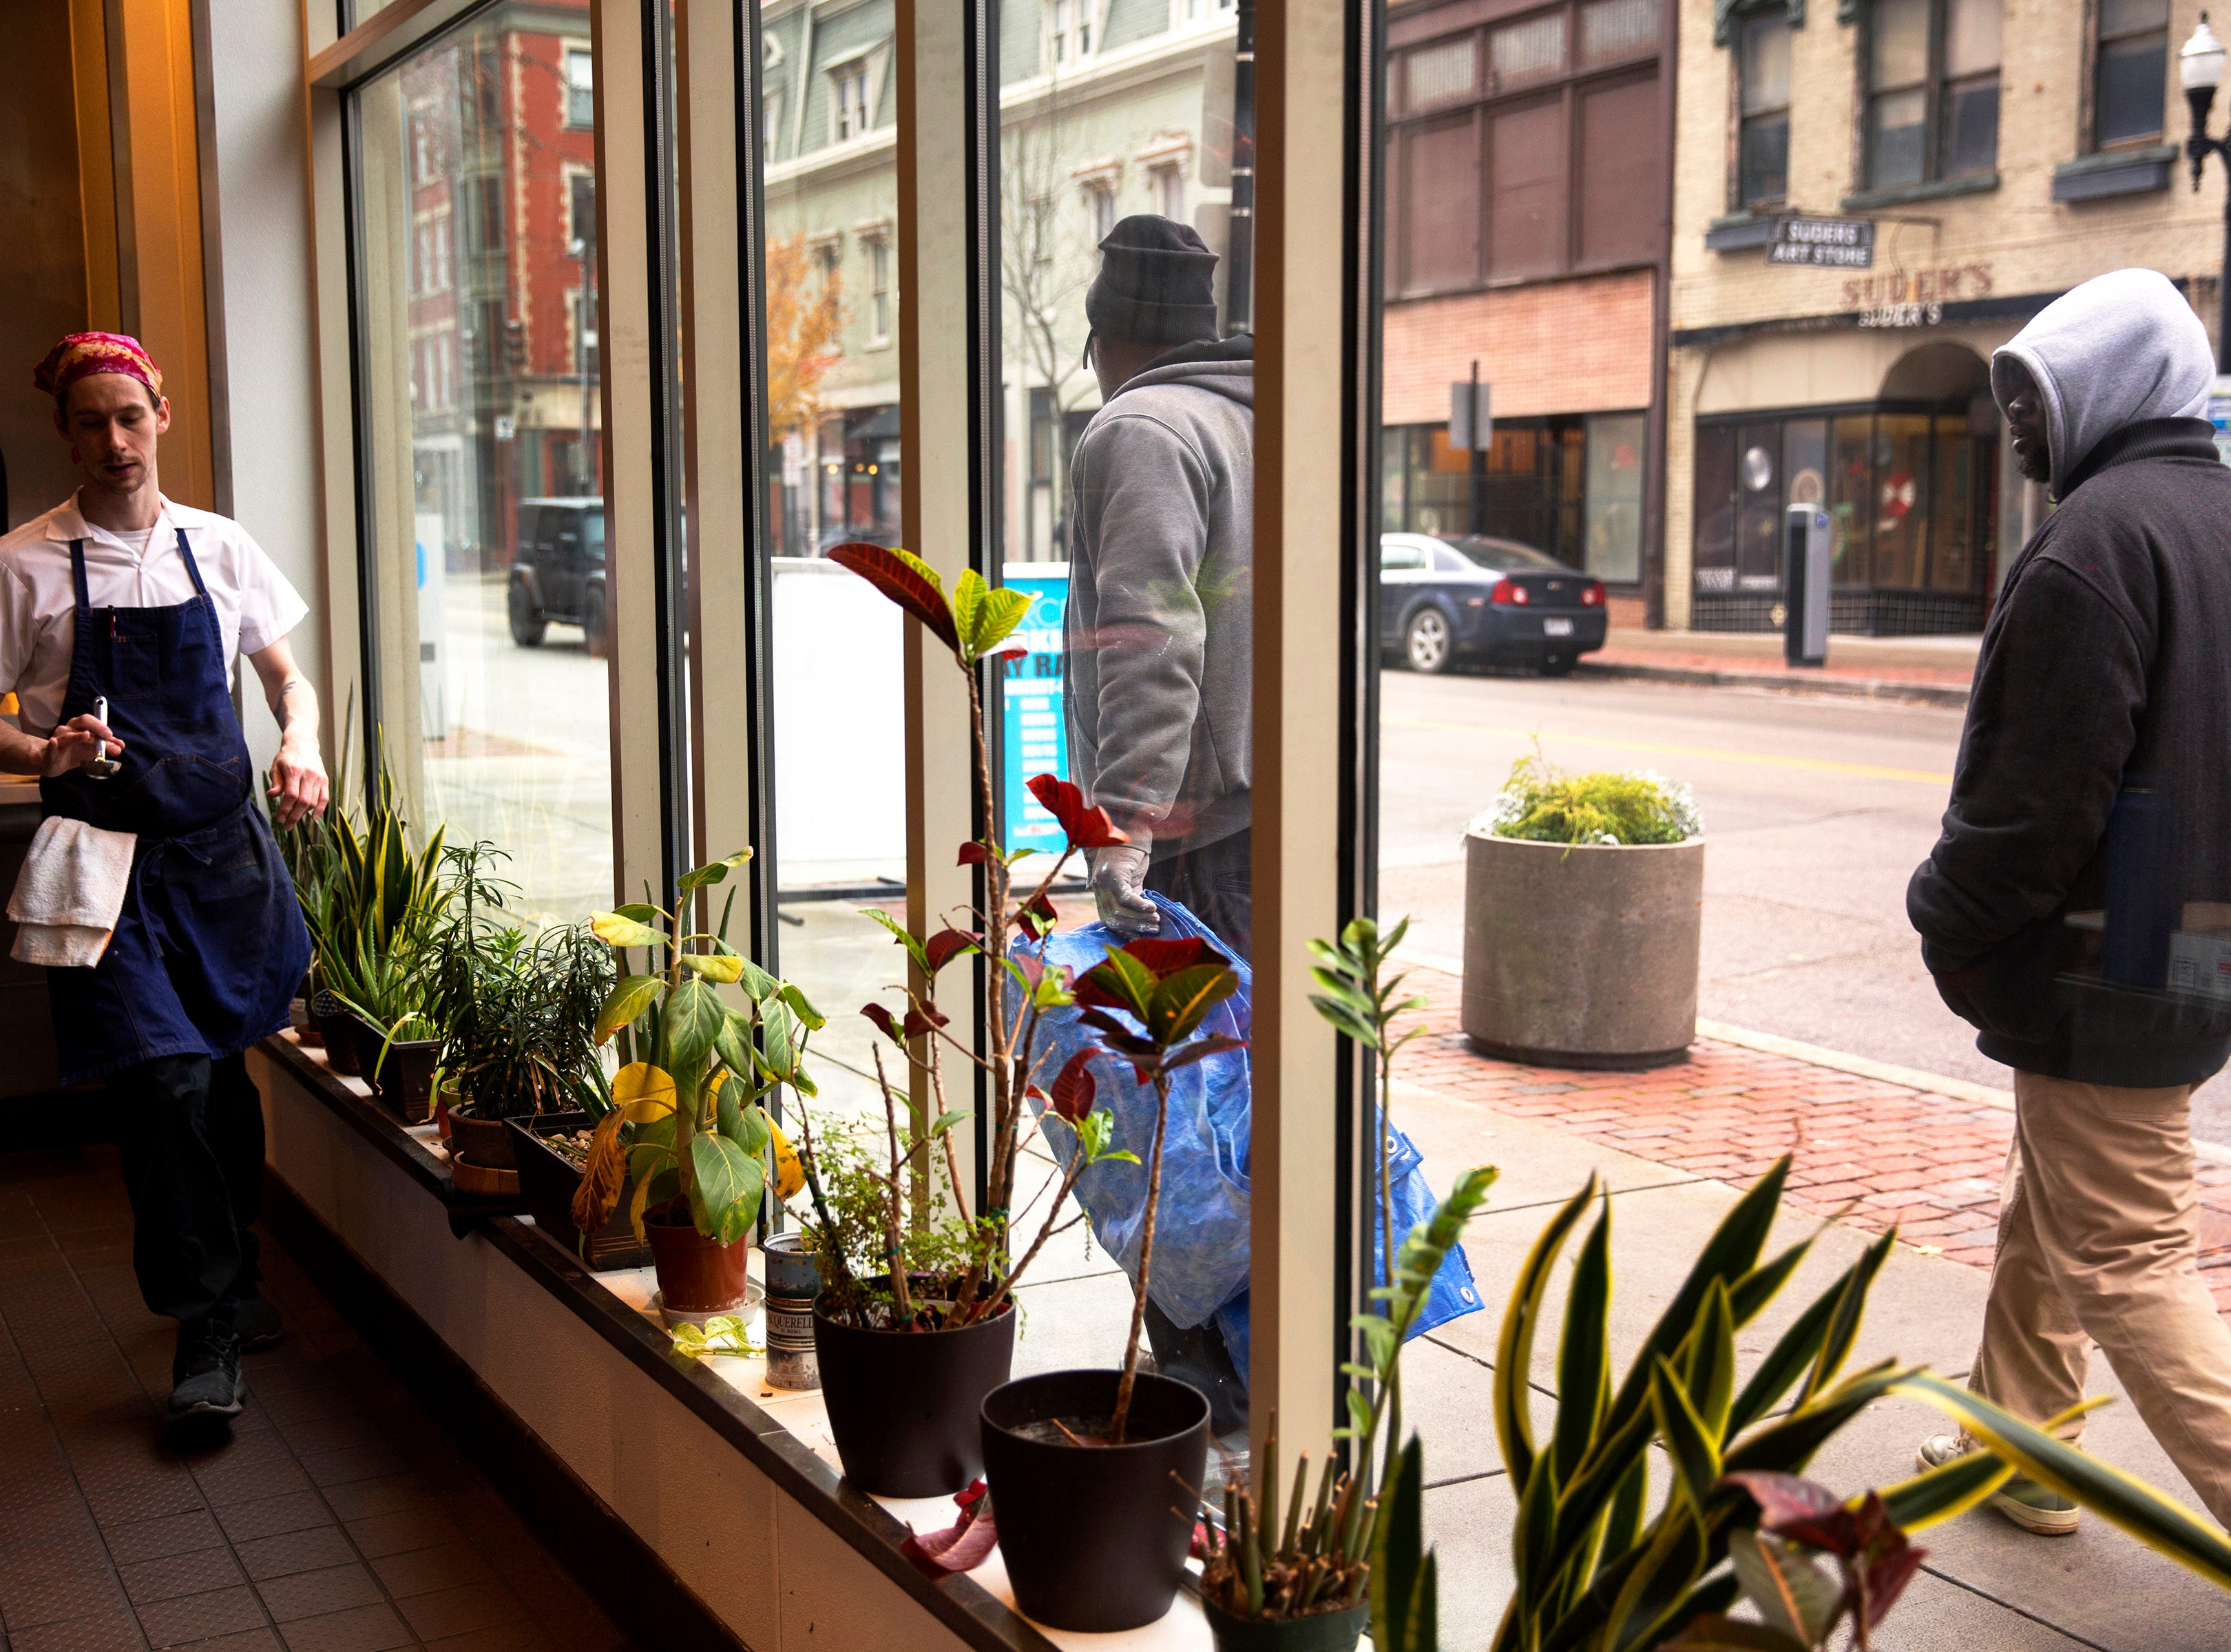 The big picture windows at The Mercer on Vine Street in Over-the-Rhine allow the world to look in at the action. The restaurant  has been serving Italian-Eureopen food since 2014. The owner, Jon Zipperstein, also owns Kaze, just up the block and Embers in Madeira. Emmy Friedrichs is the manager.